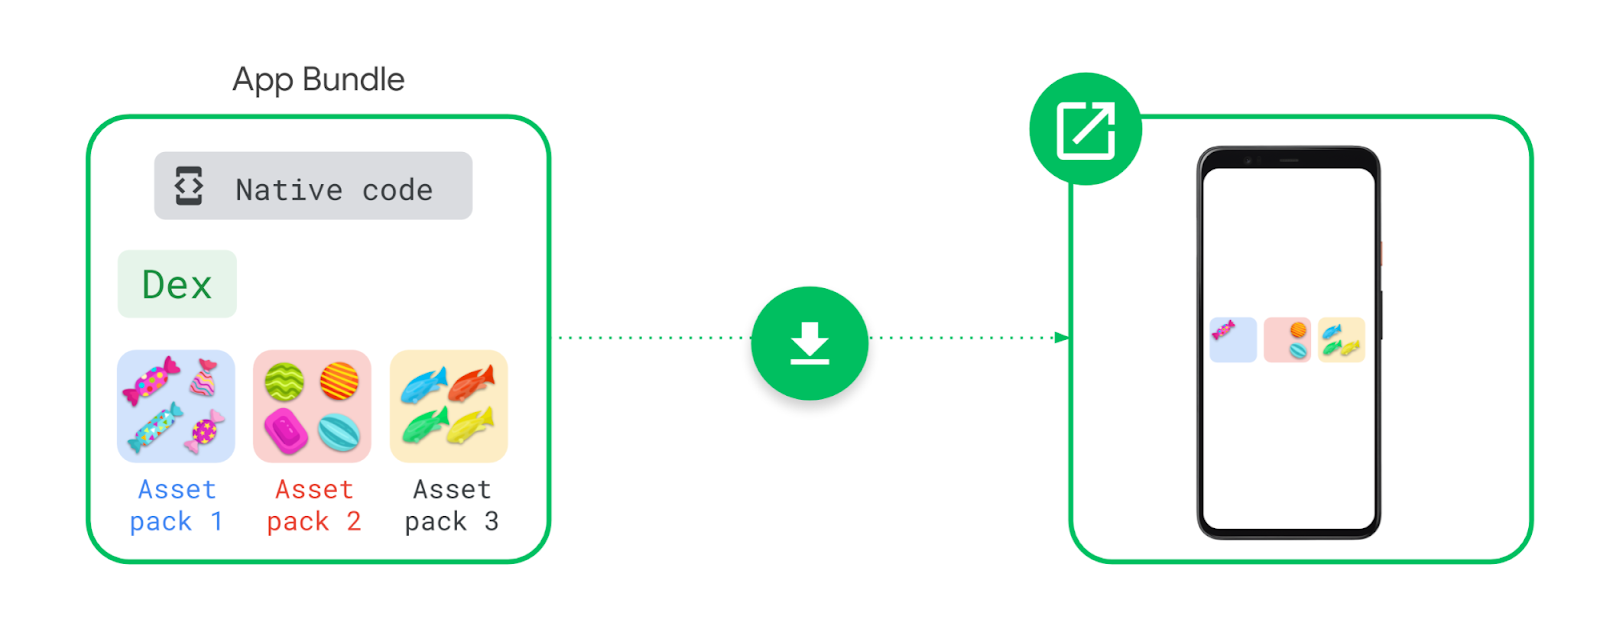 Android Developers Blog: Modern app and game distribution on